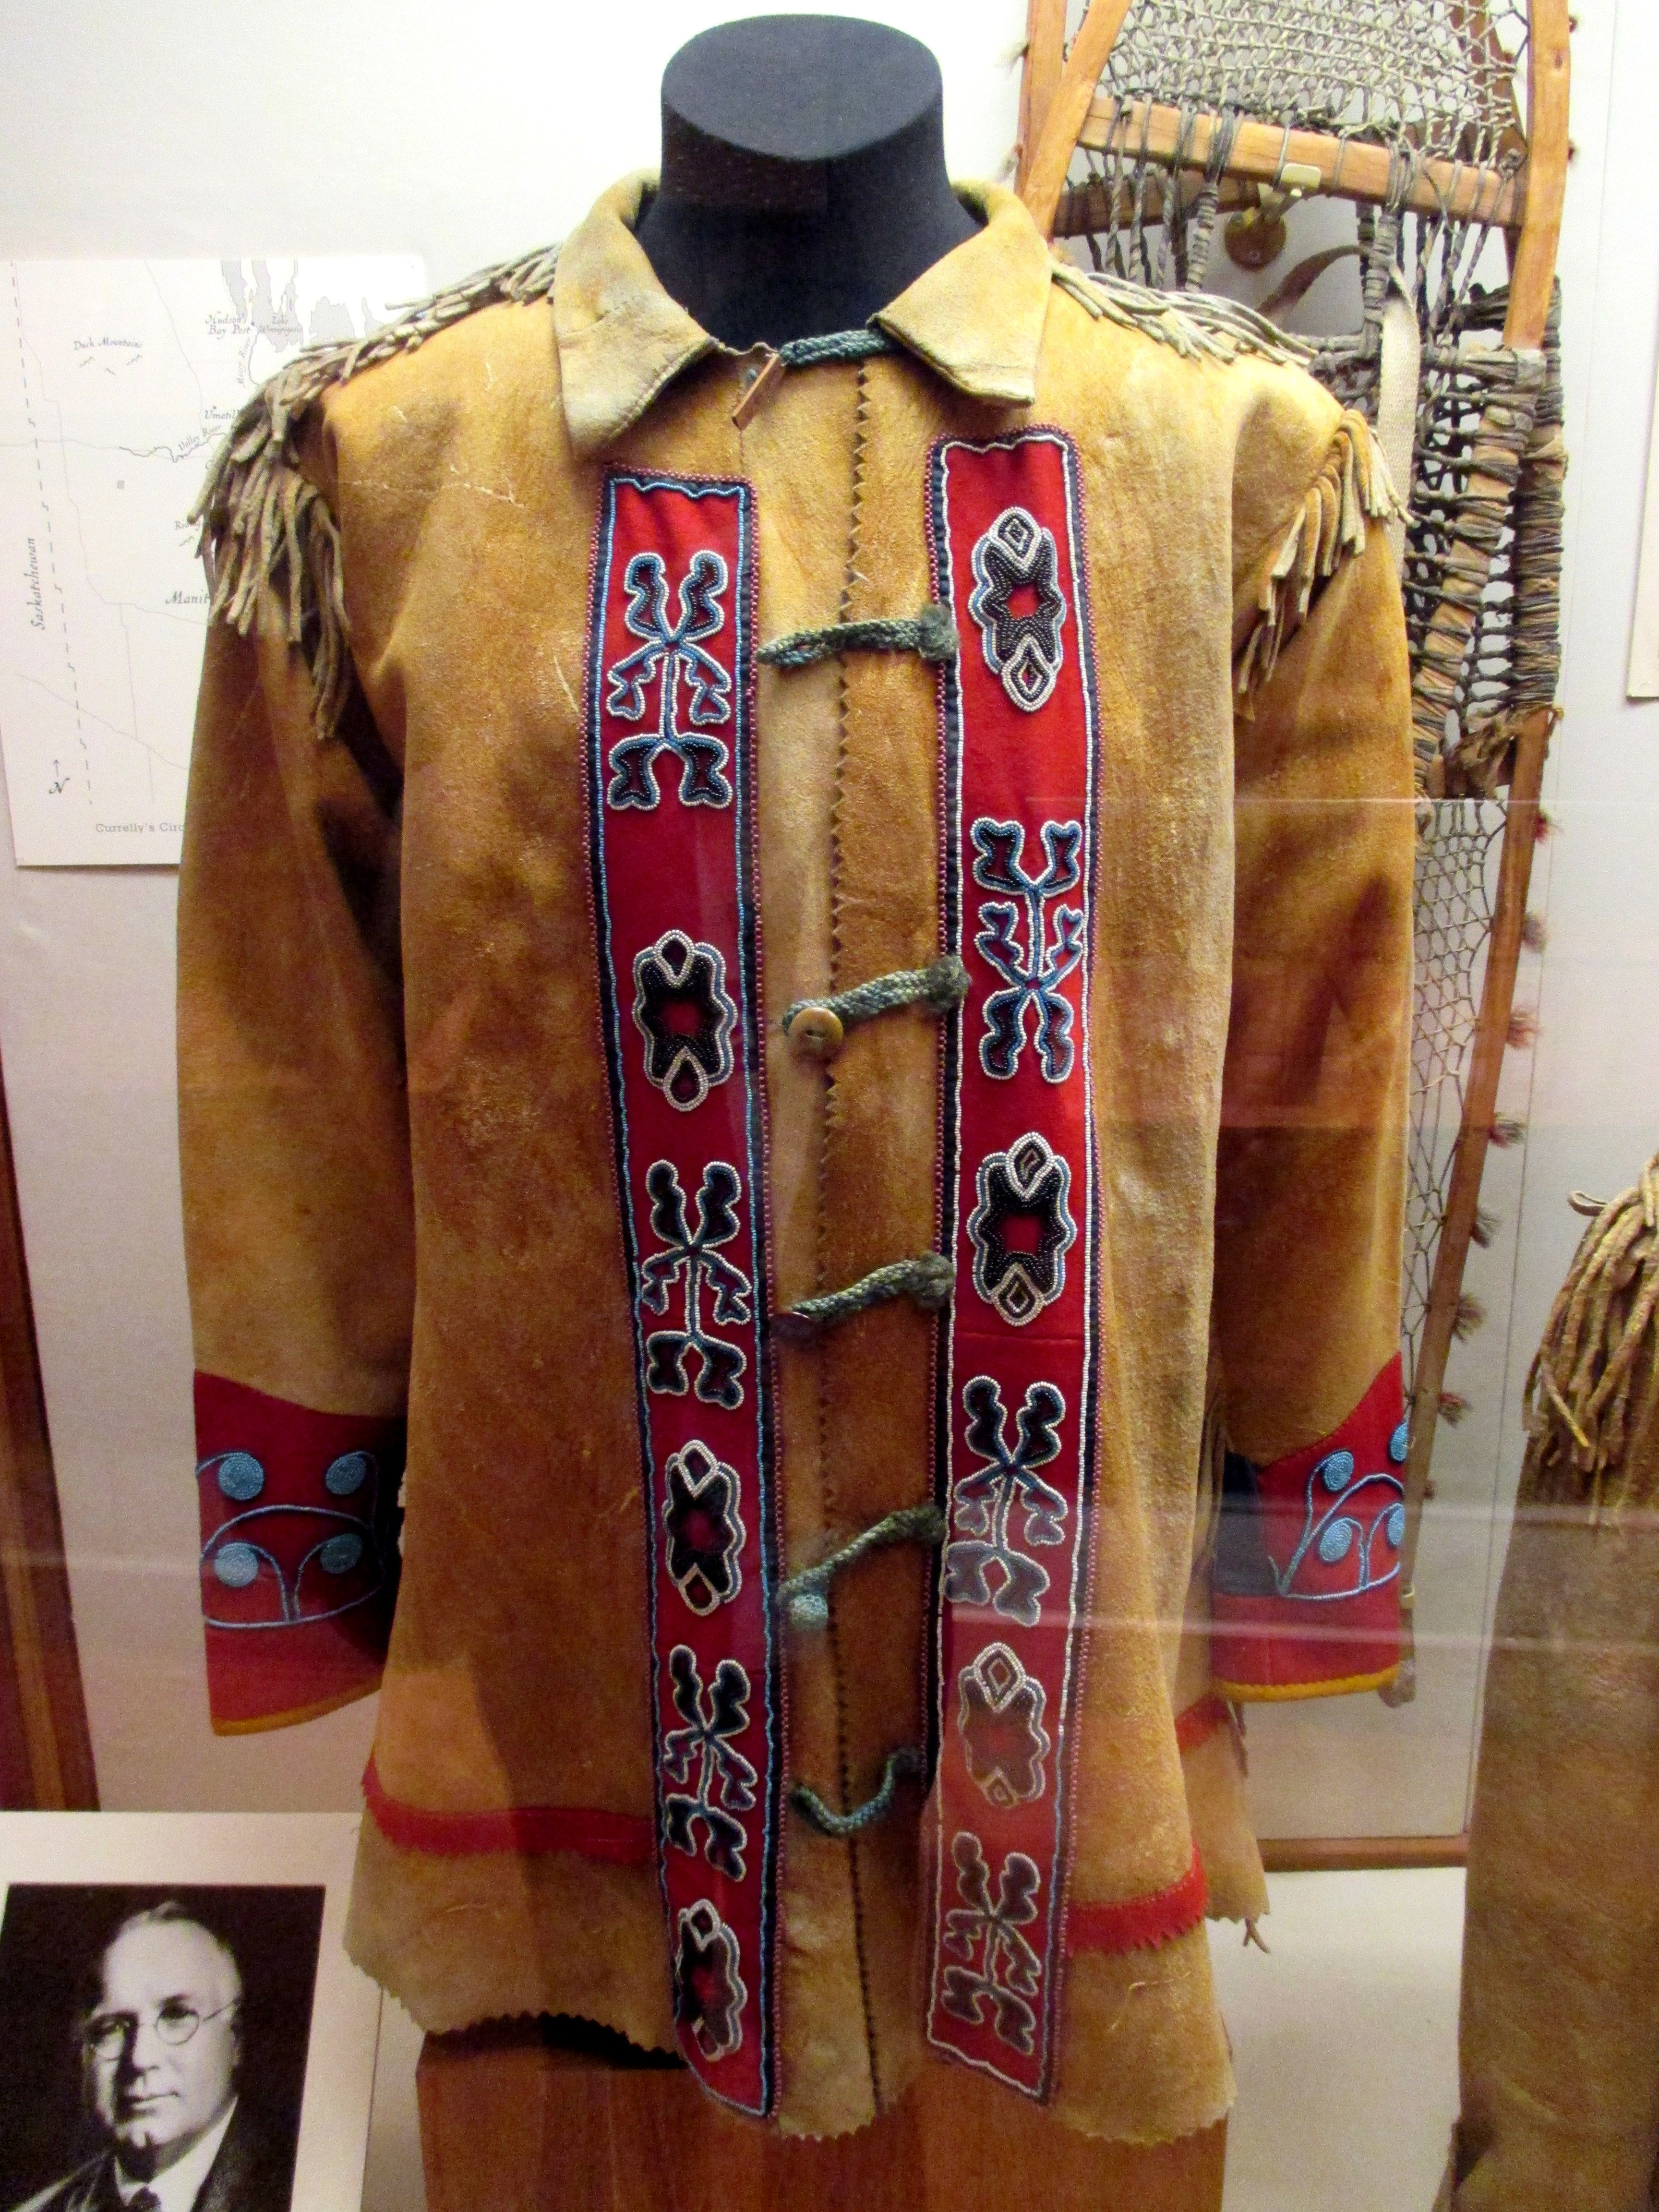 The dress he wore toronto - 1880s Ojibway First Nations Or M Tis Beaded Skin Coat At The Royal Ontario Museum